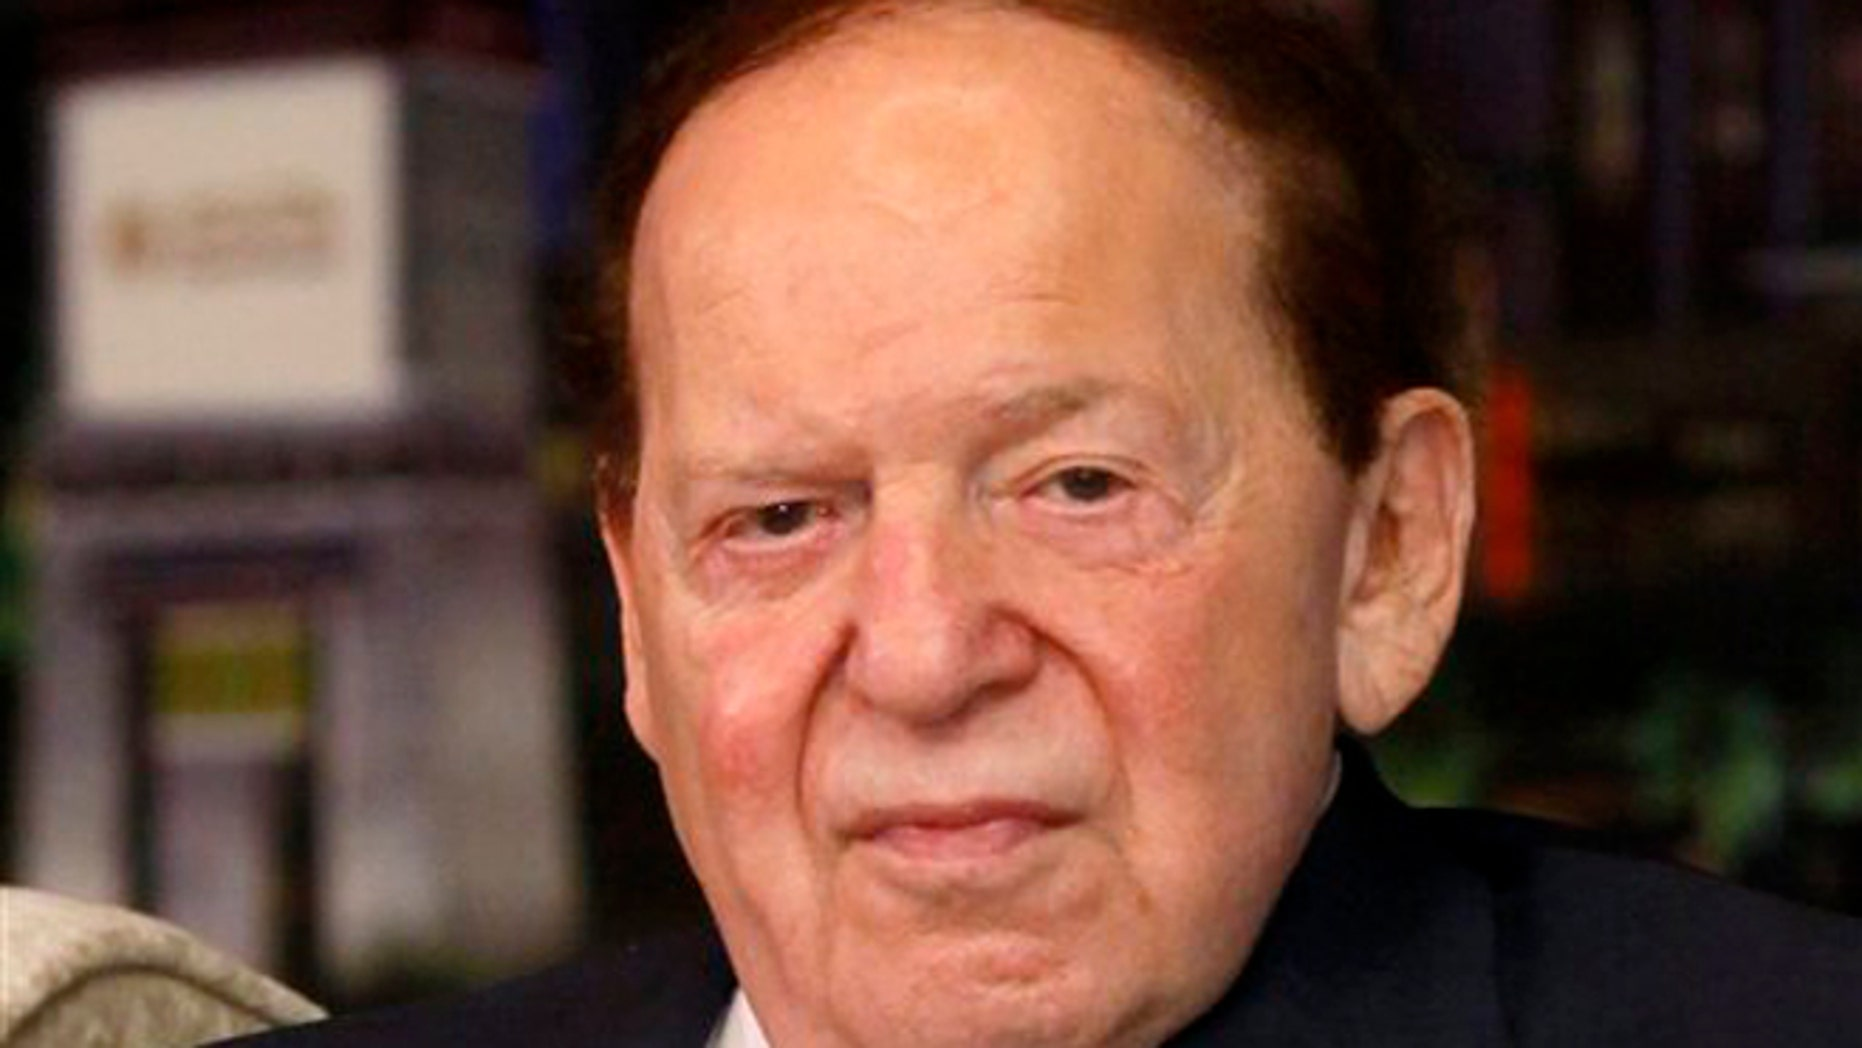 April 12, 2012: In this file photo, Las Vegas Sands Chairman and CEO Sheldon Adelson speaks at a news conference for the Sands Cotai Central in Macau.